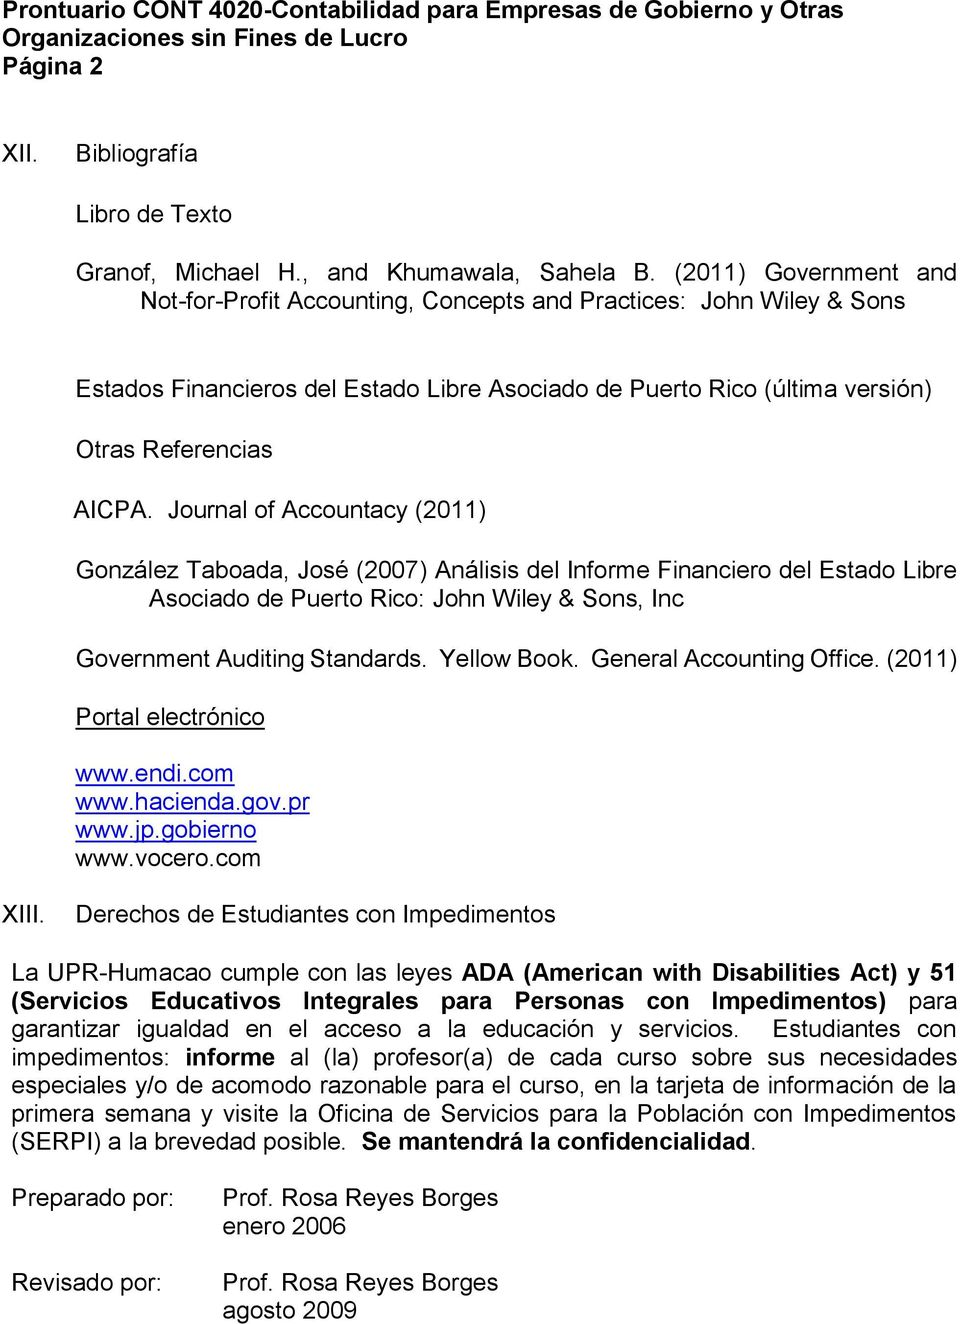 Journal of Accountacy (2011) González Taboada, José (2007) Análisis del Informe Financiero del Estado Libre Asociado de Puerto Rico: John Wiley & Sons, Inc Government Auditing Standards. Yellow Book.